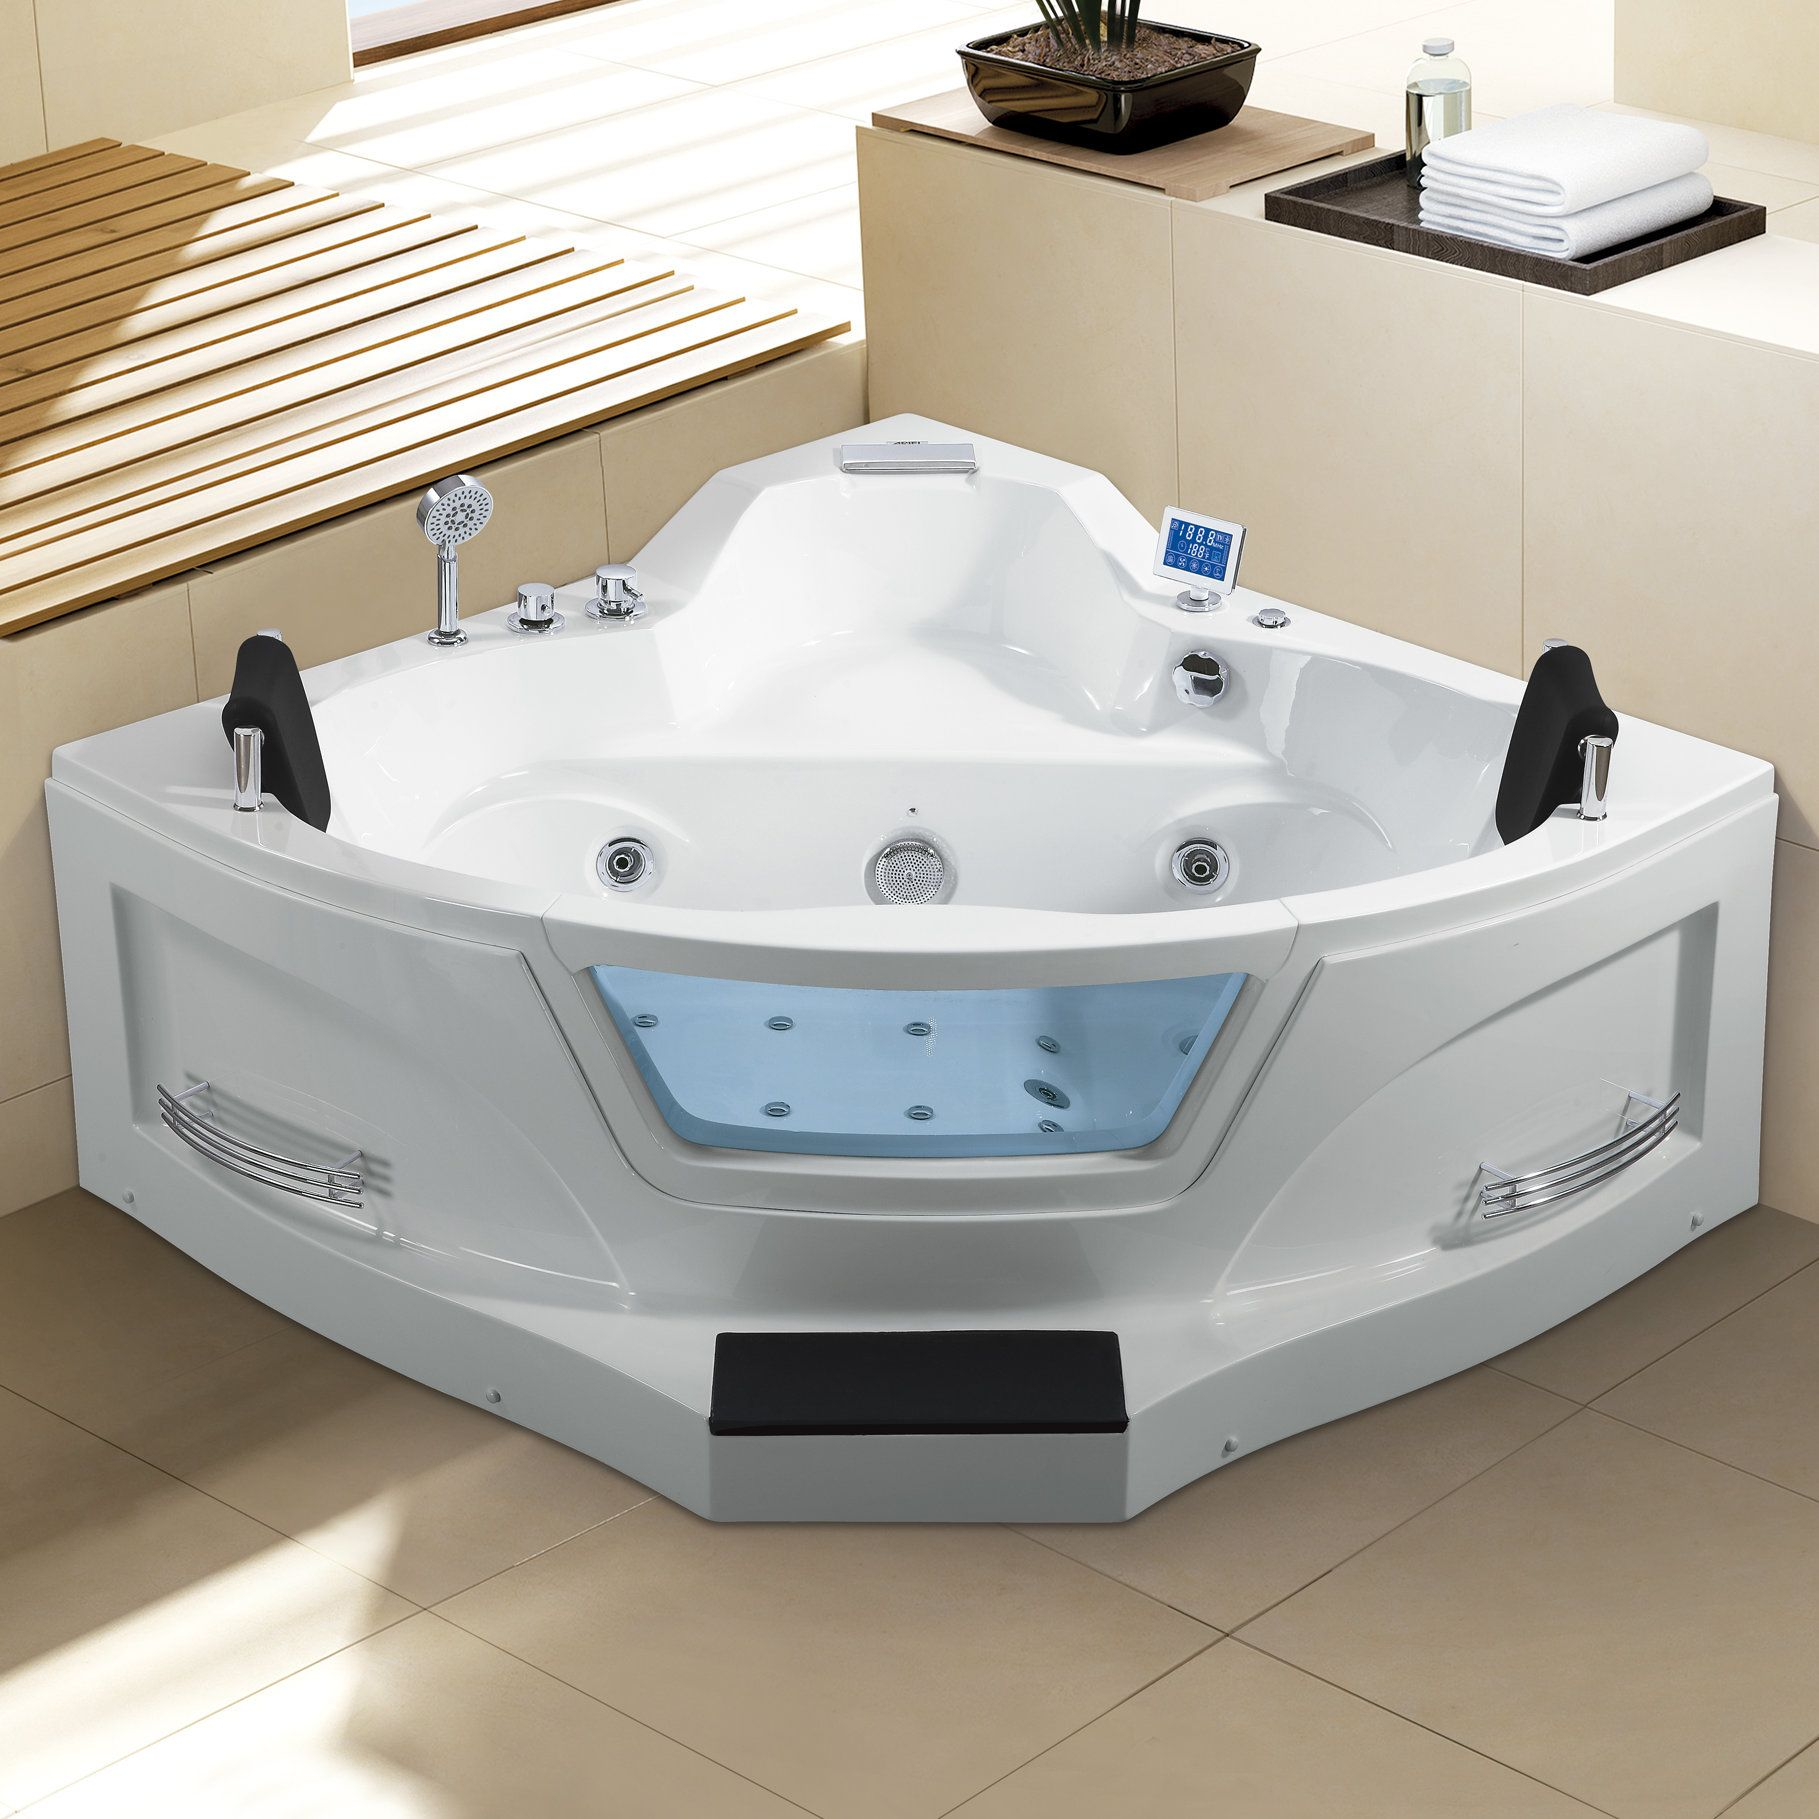 Ariel 61 X 61 Corner Whirlpool Bathtub Refinish Bathtub